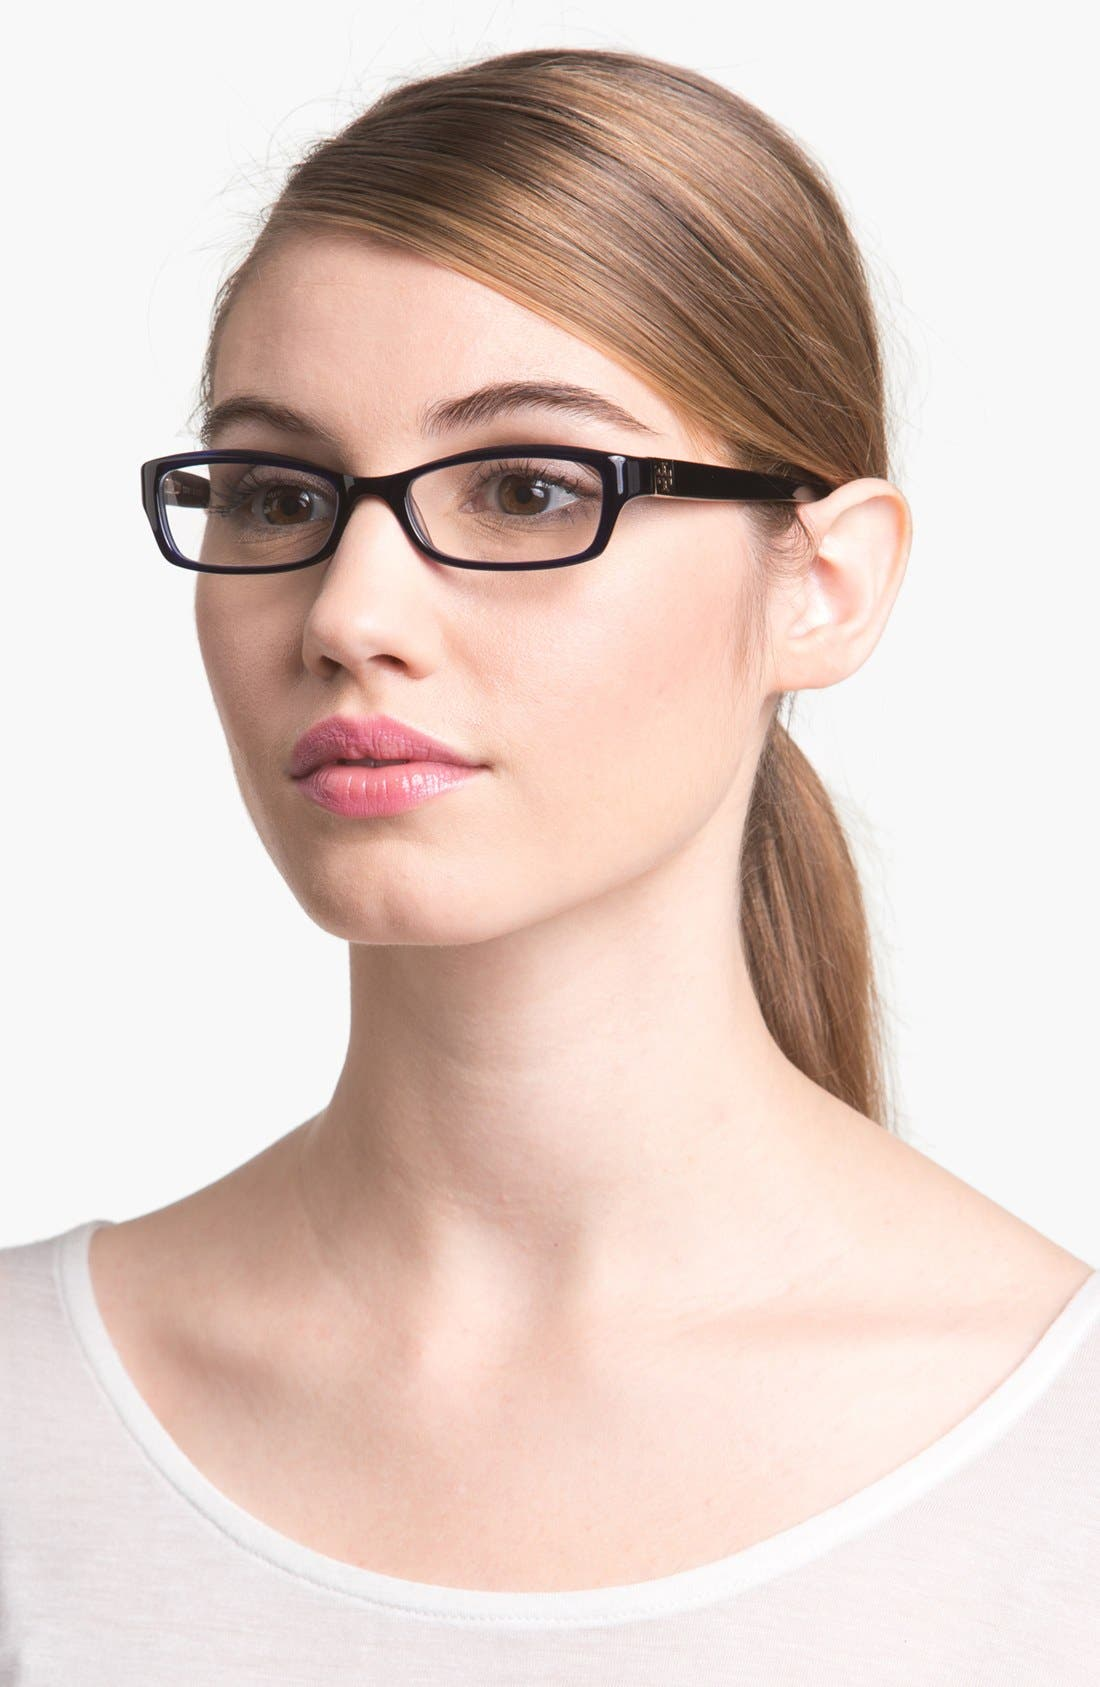 Alternate Image 1 Selected - Tory Burch 49mm Optical Glasses (Online Only)